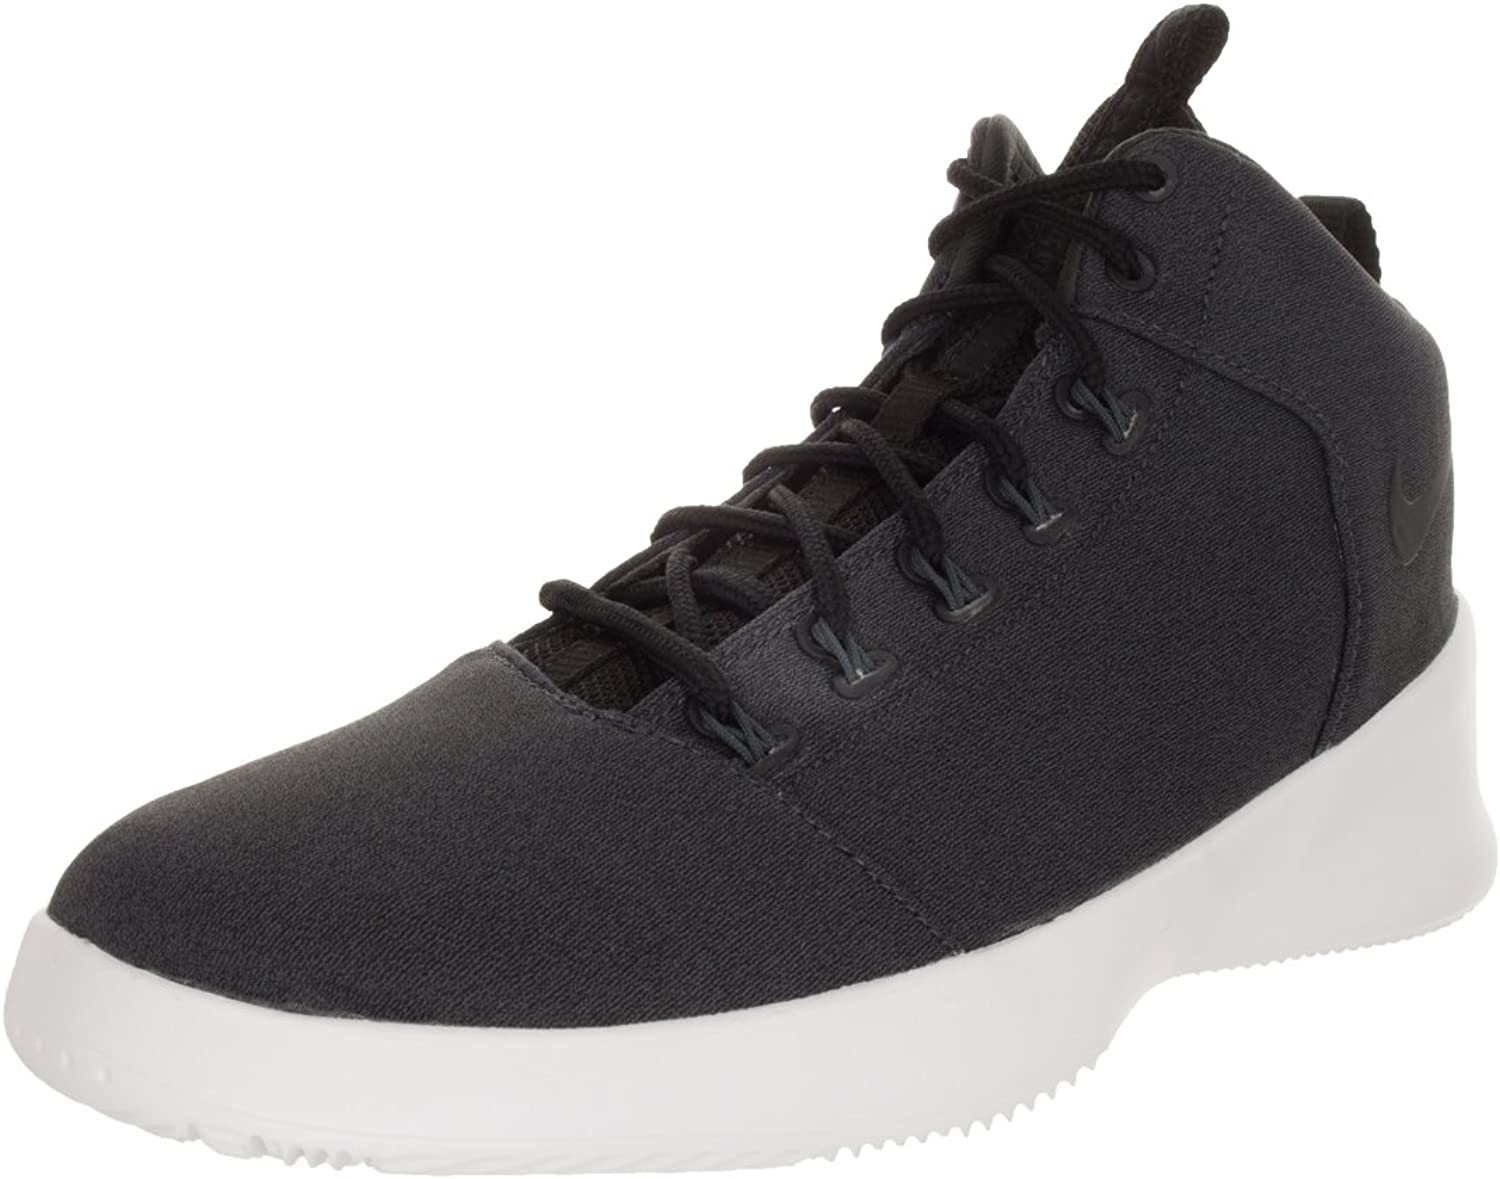 Nike Men's 759996 AnkleHigh Fabric Basketball shoes